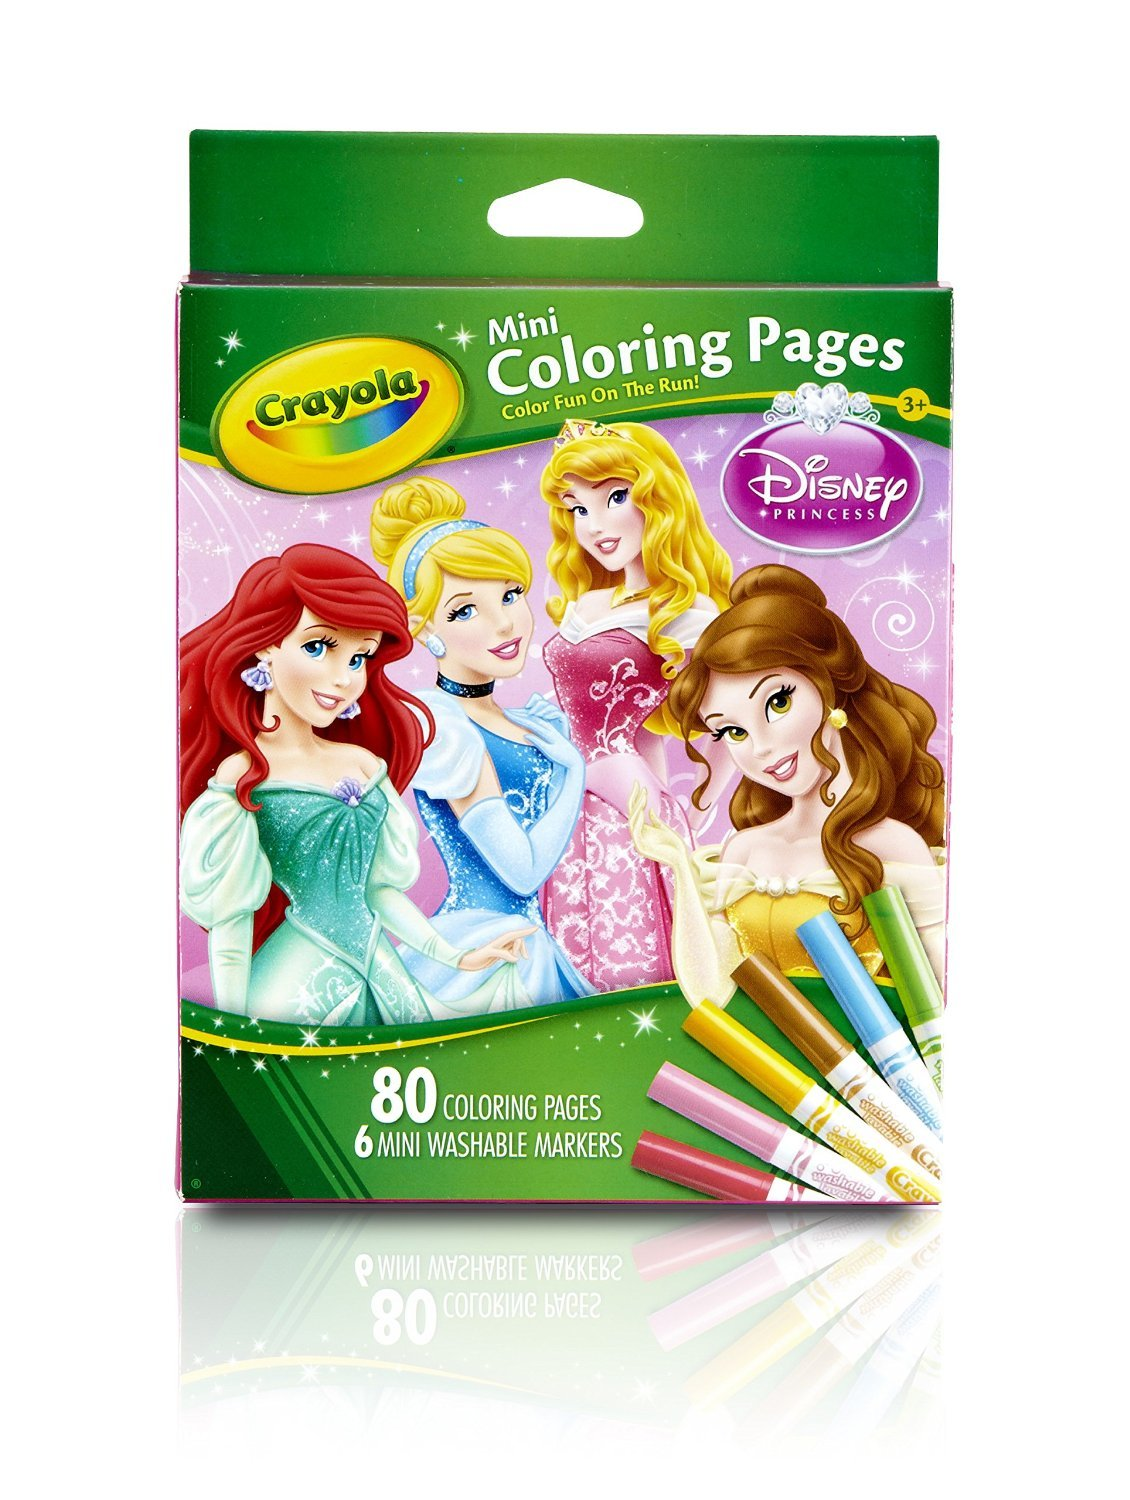 Crayola Mini Coloring Pages Frozen : Crayola mini coloring pages